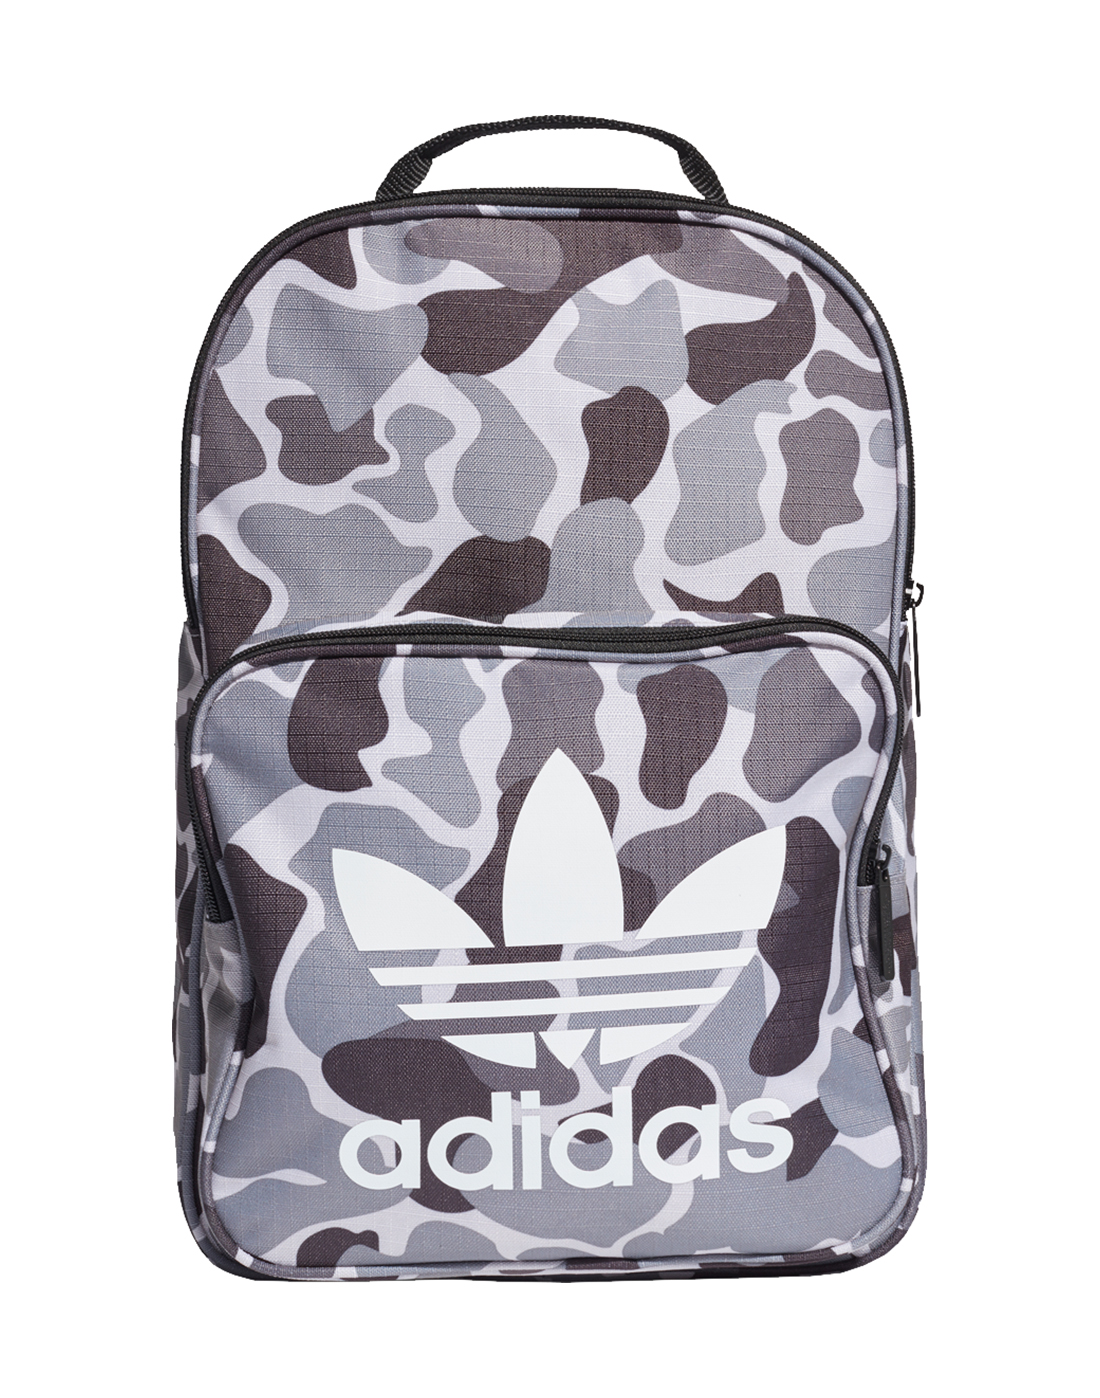 cd228f8d0874 adidas Originals. Classic Camo Backpack. Classic Camo Backpack ...